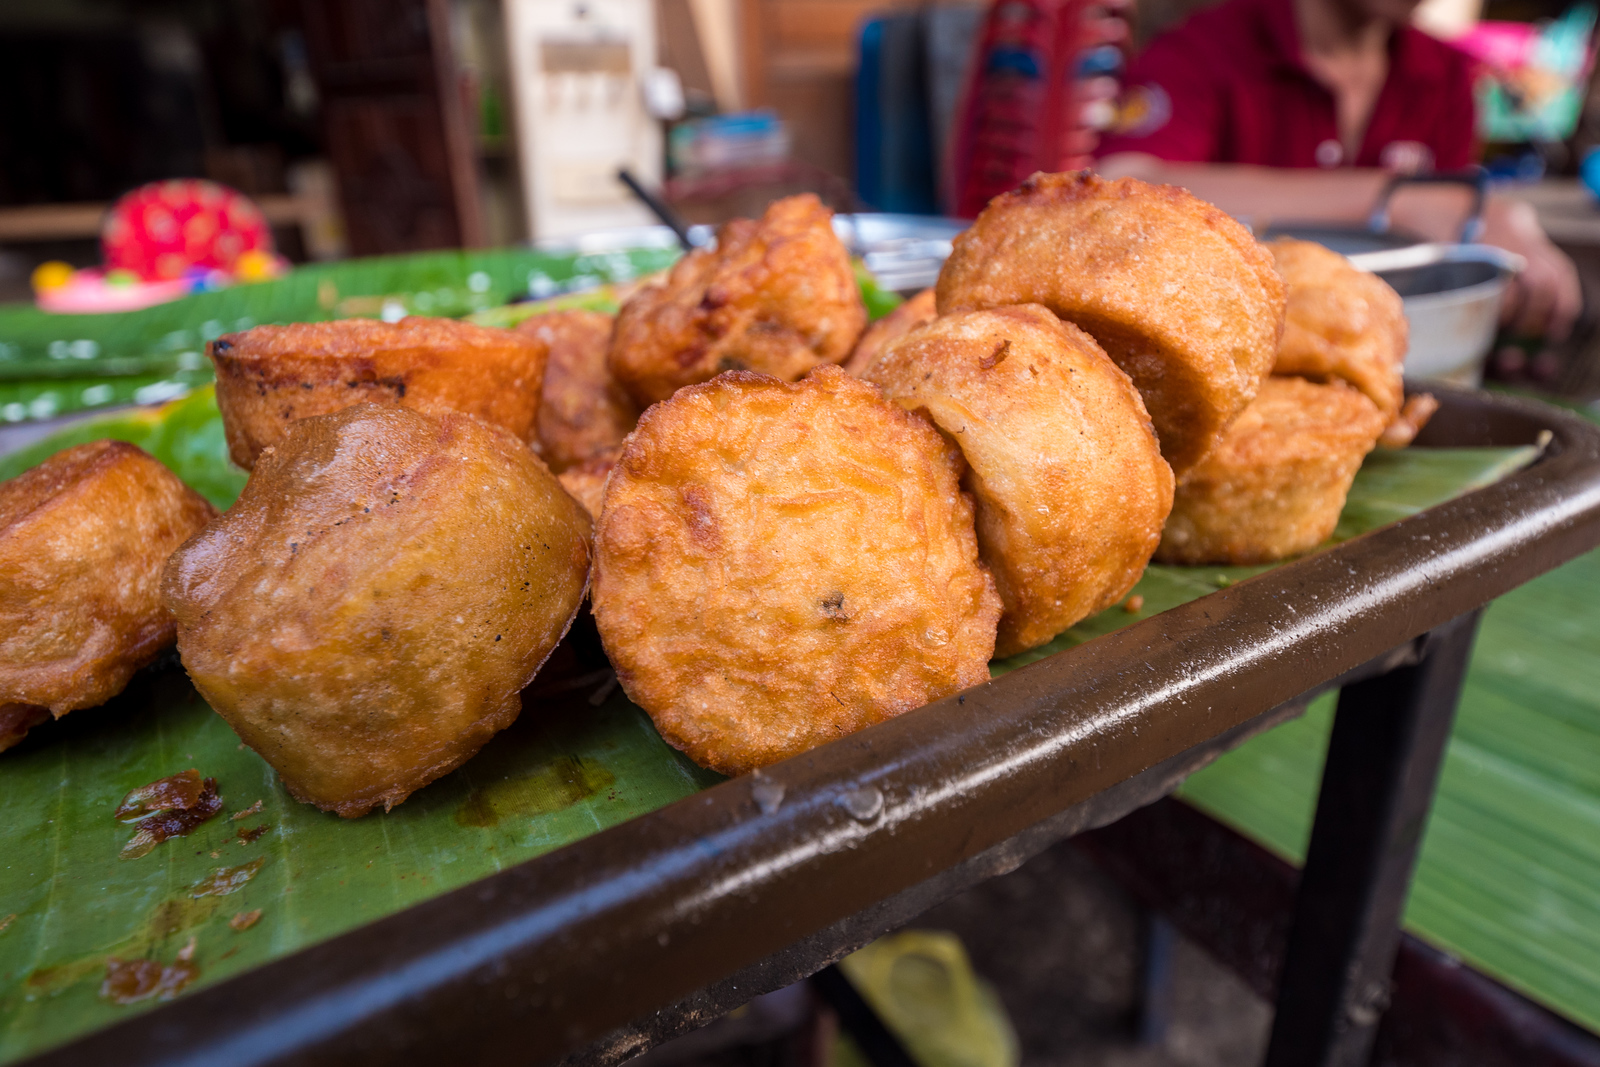 Bean Cakes at the Morning Market in Luang Prabang